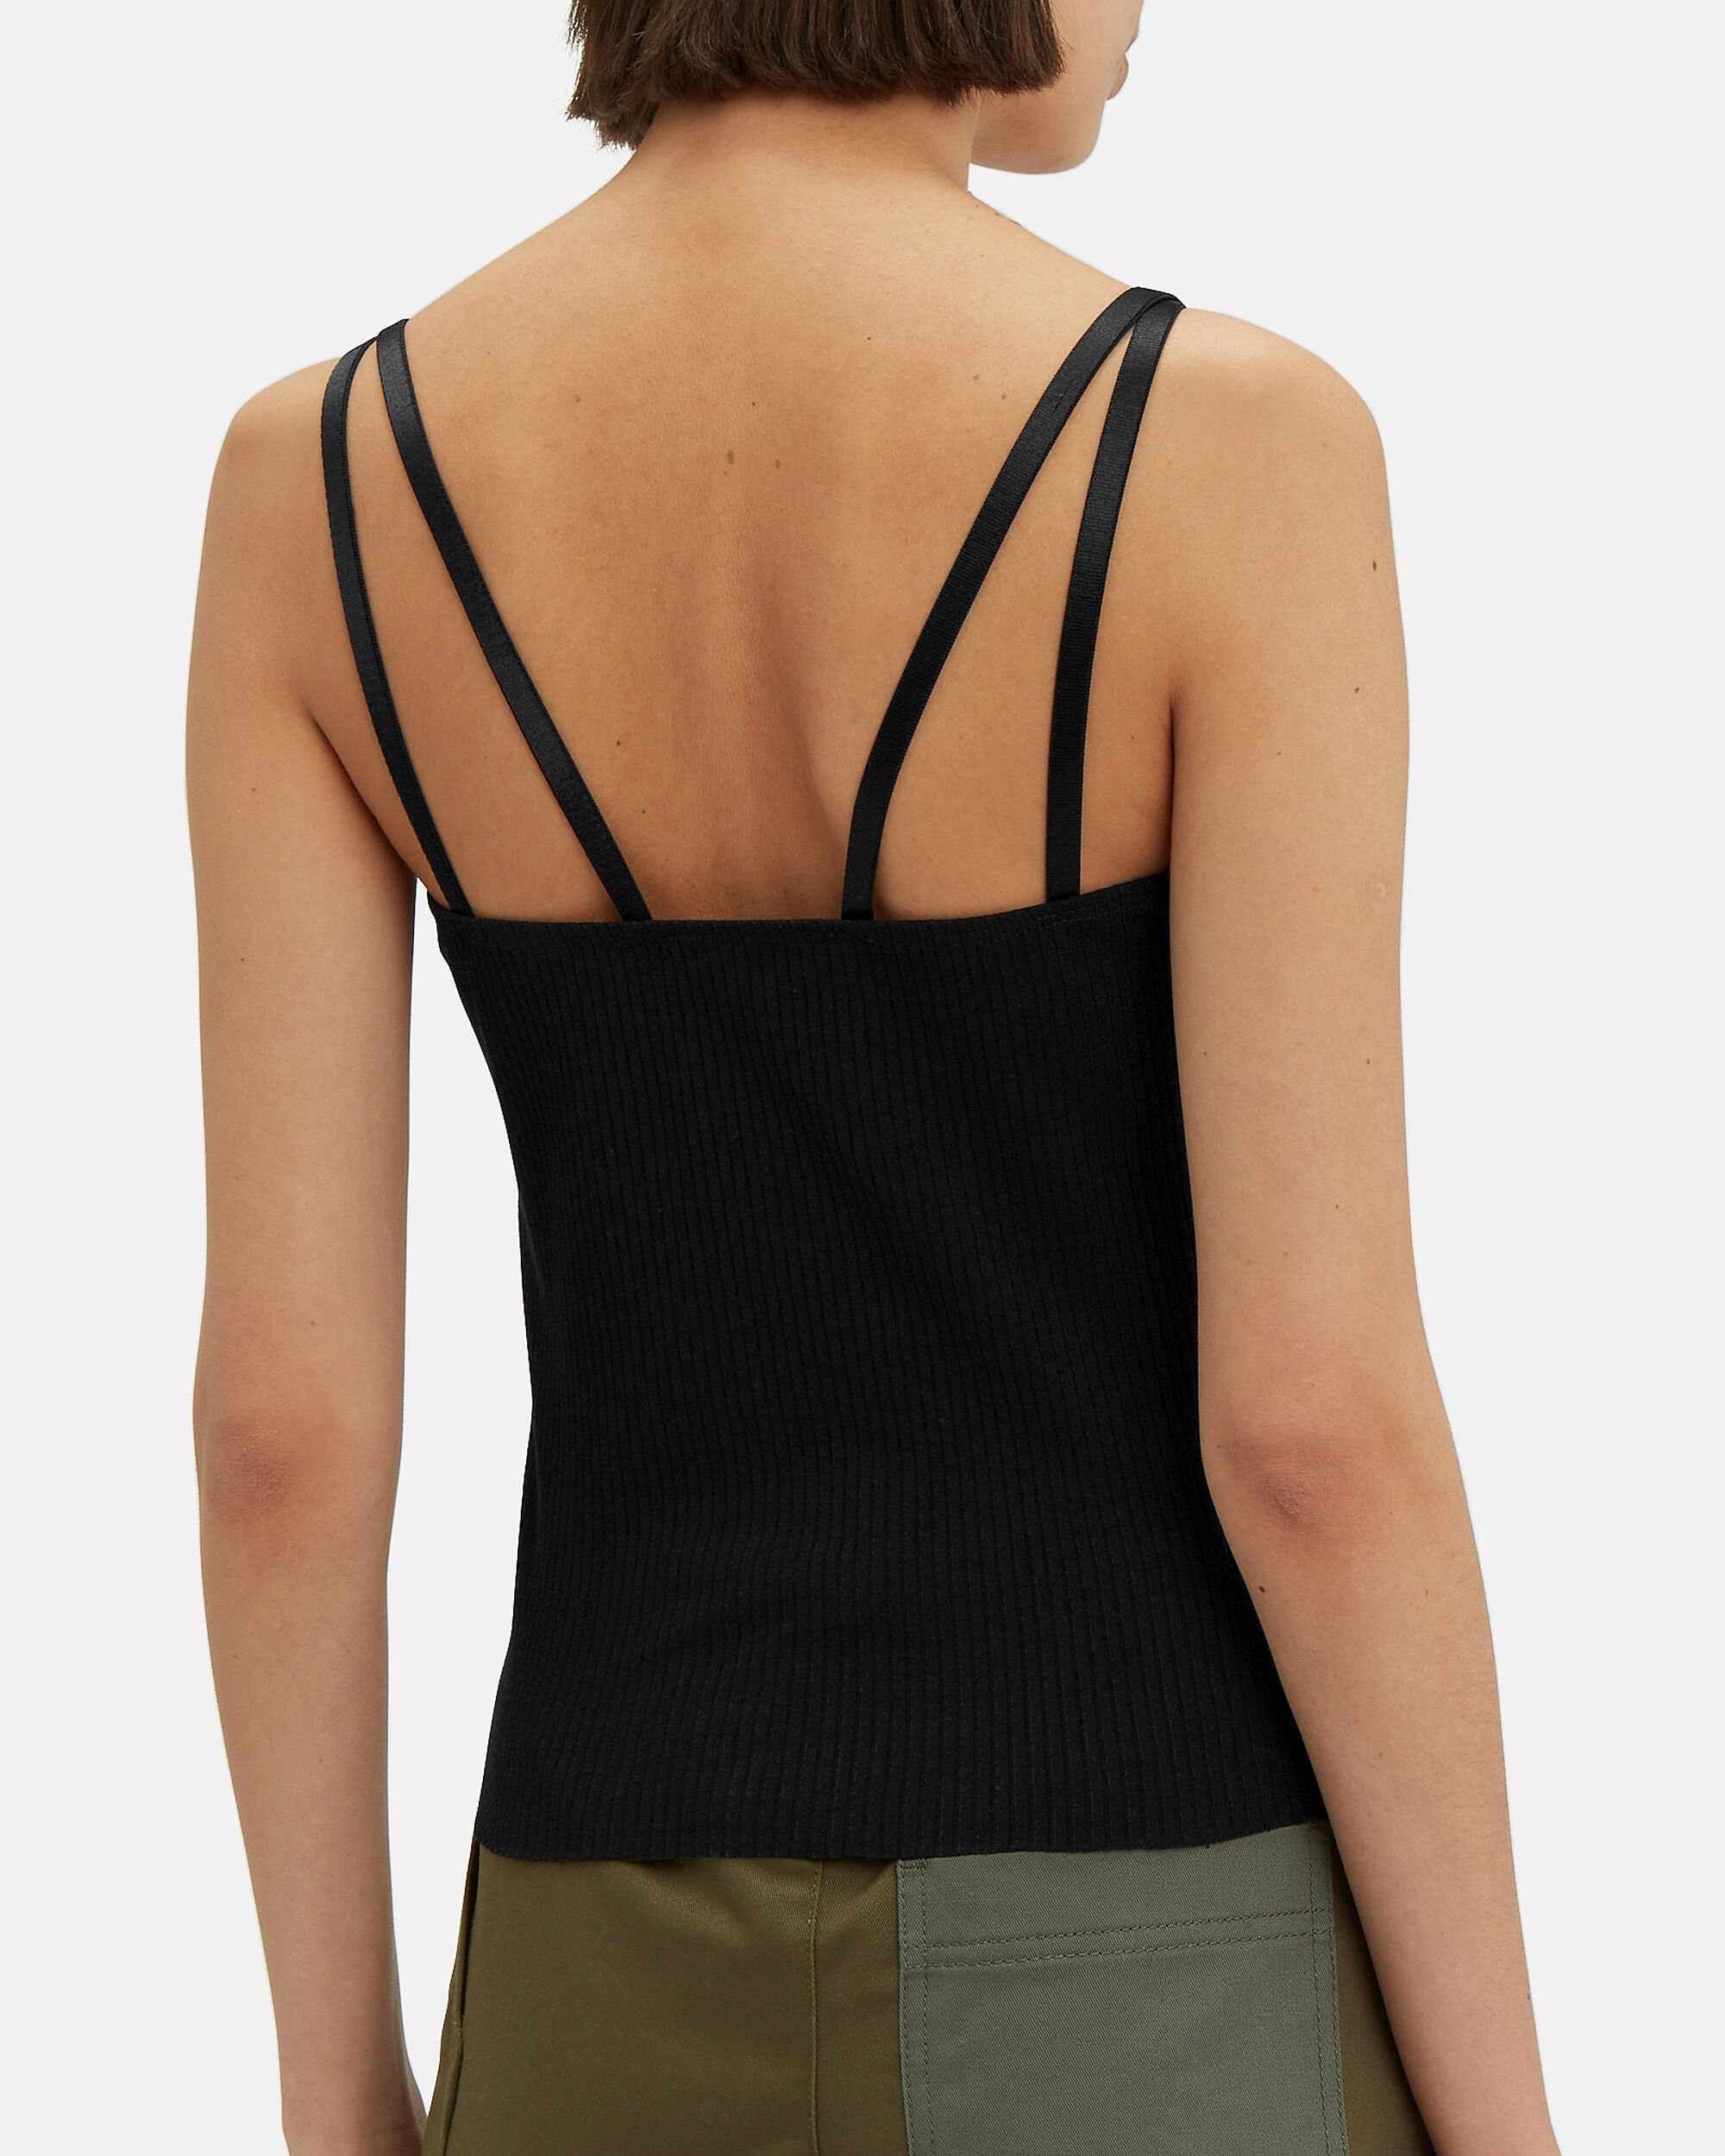 Alloy Suspension Black Tank, BLACK, hi-res